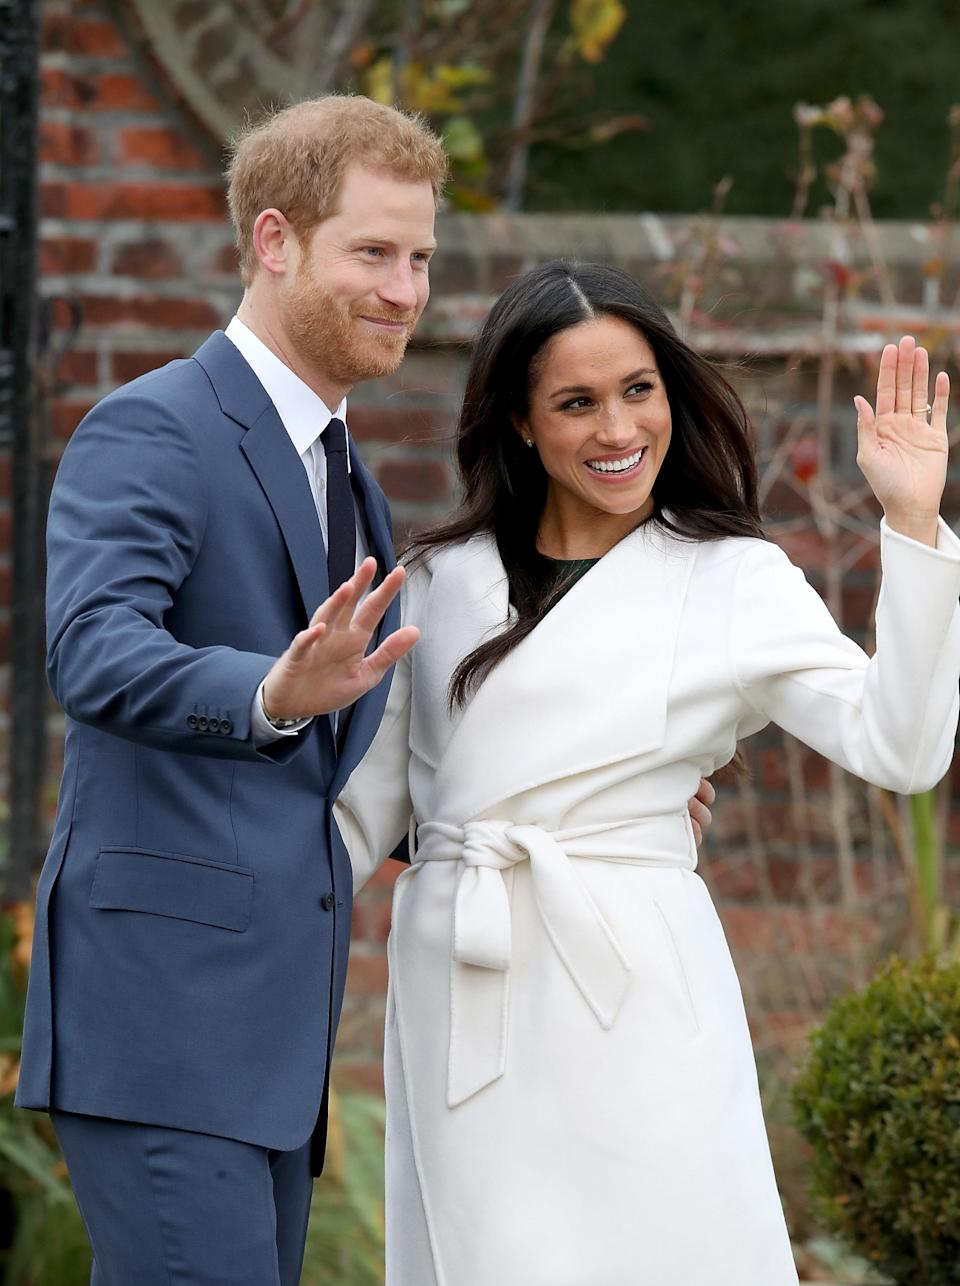 """<p>Here's a better look at her coat, which she wore over a green dress by P.A.R.O.S.H. Markle is a fan of Line the Label, which describes itself as """"effortless understated luxury,"""" and wore one of the company's trenches earlier. Of course, there's now speculation about who she will have design her wedding dress. Meghan has said that her favorite celebrity wedding dress of all time was <a rel=""""nofollow noopener"""" href=""""https://www.glamour.com/story/suits-wedding-dress-rachel-zane"""" target=""""_blank"""" data-ylk=""""slk:Carolyn Bessette Kennedy's Narciso Rodriguez slip dress"""" class=""""link rapid-noclick-resp"""">Carolyn Bessette Kennedy's Narciso Rodriguez slip dress</a>. She called it """"everything goals."""" (Photo: Getty Images) </p>"""